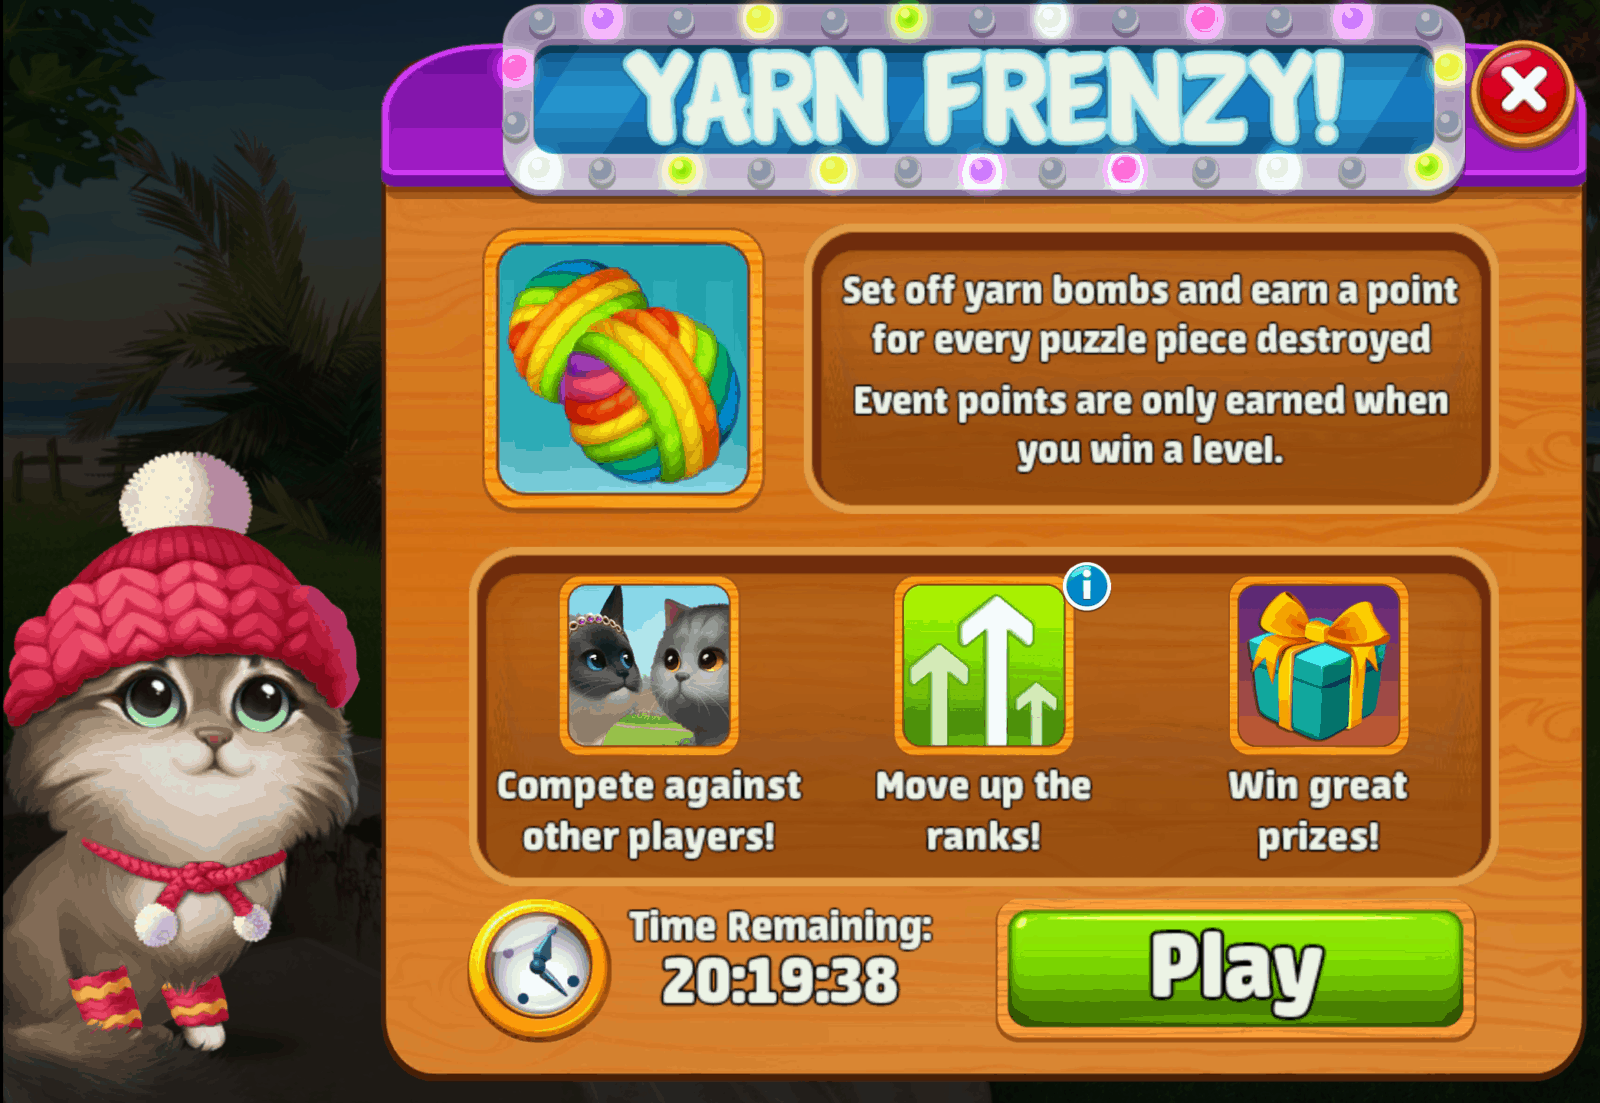 The Yarn Frenzy Event in Meow Match.